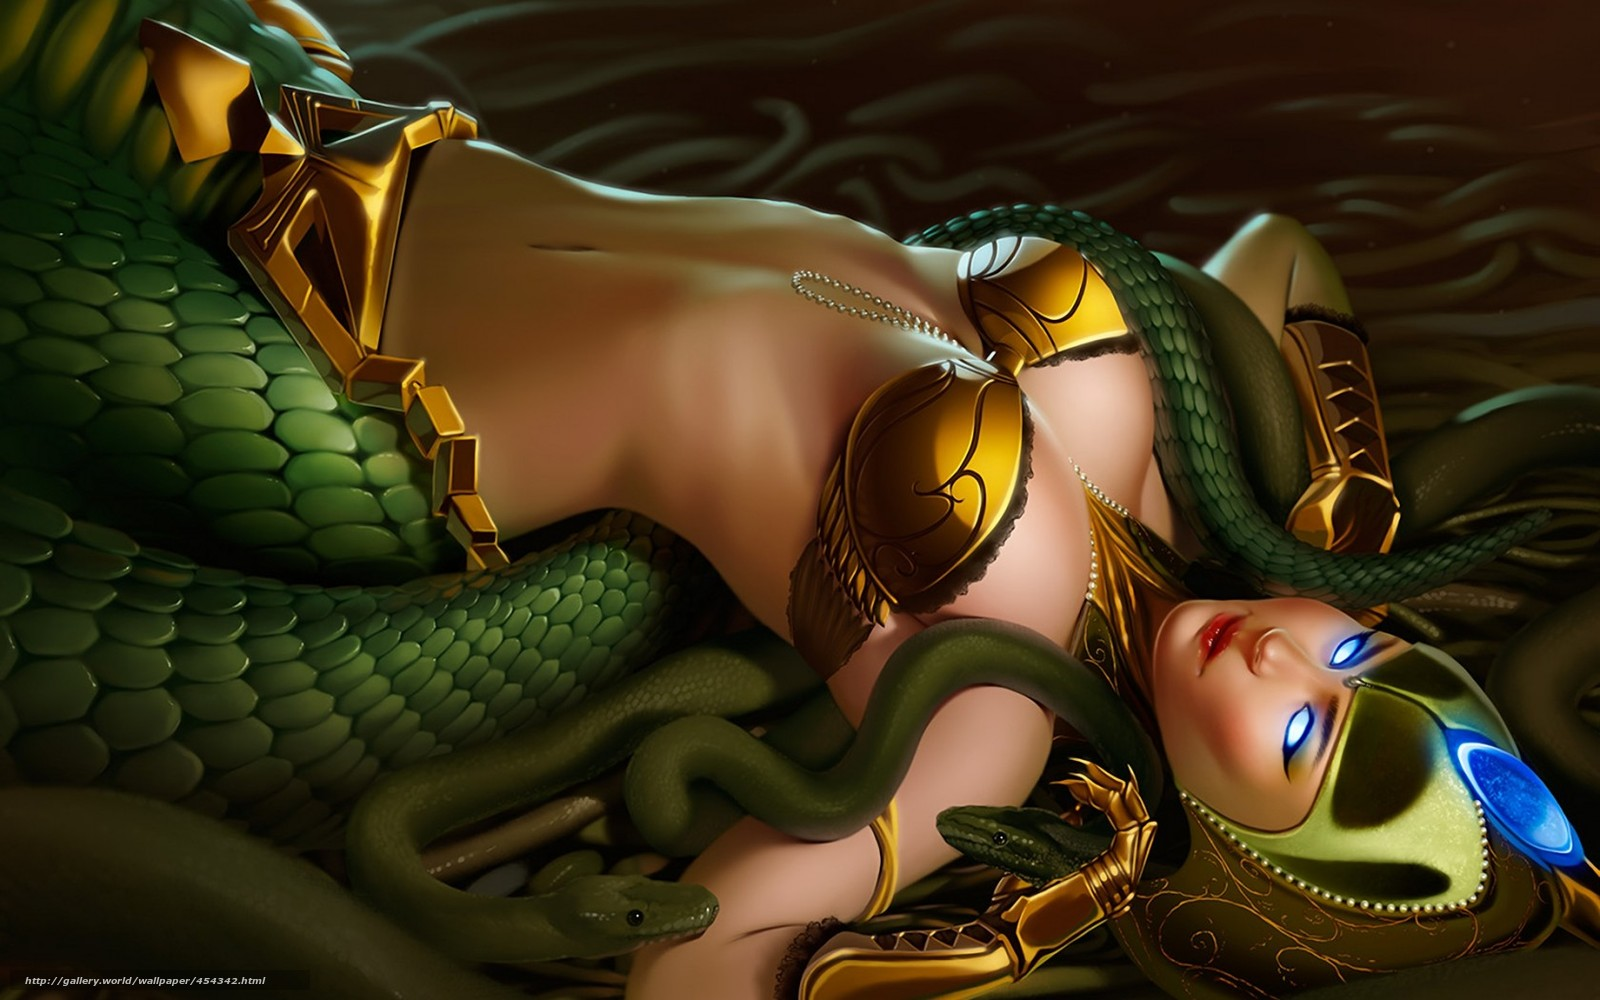 Girl snakes nude animations images porn pic